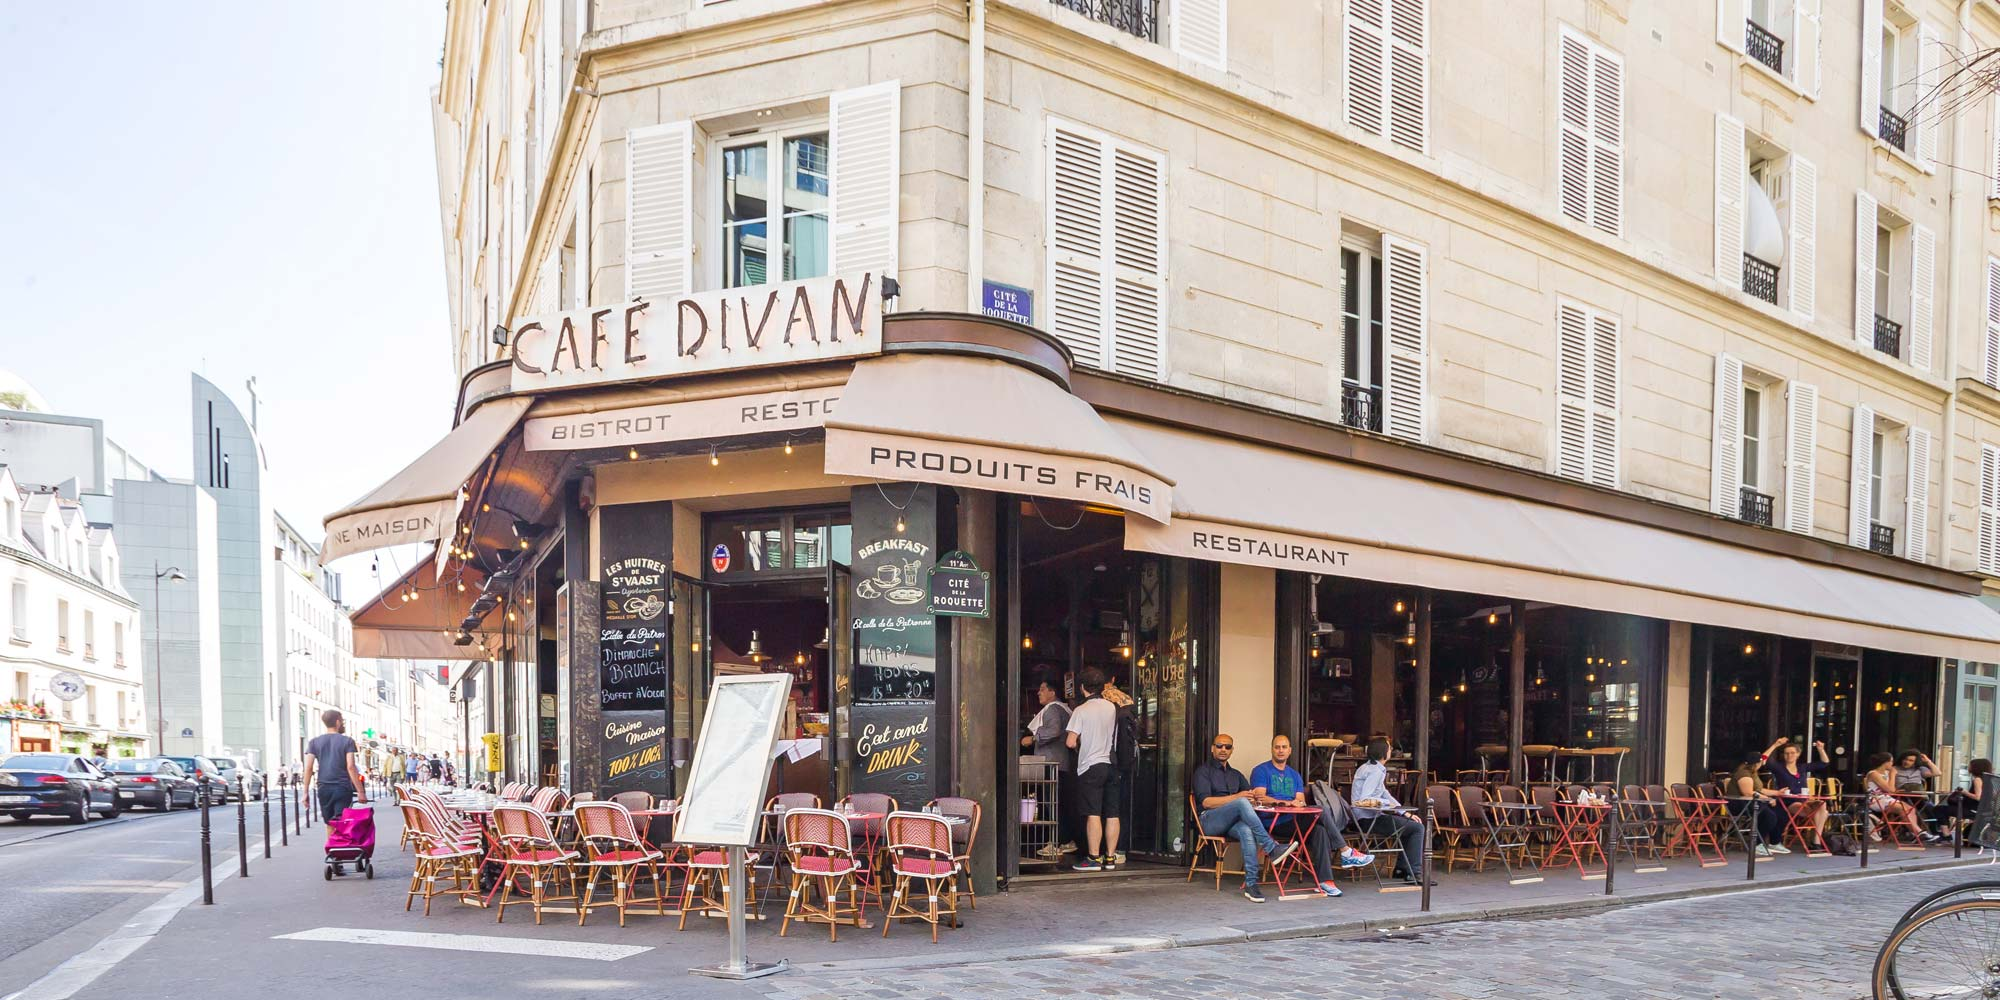 brunch caf divan 75011 paris 11 me oubruncher